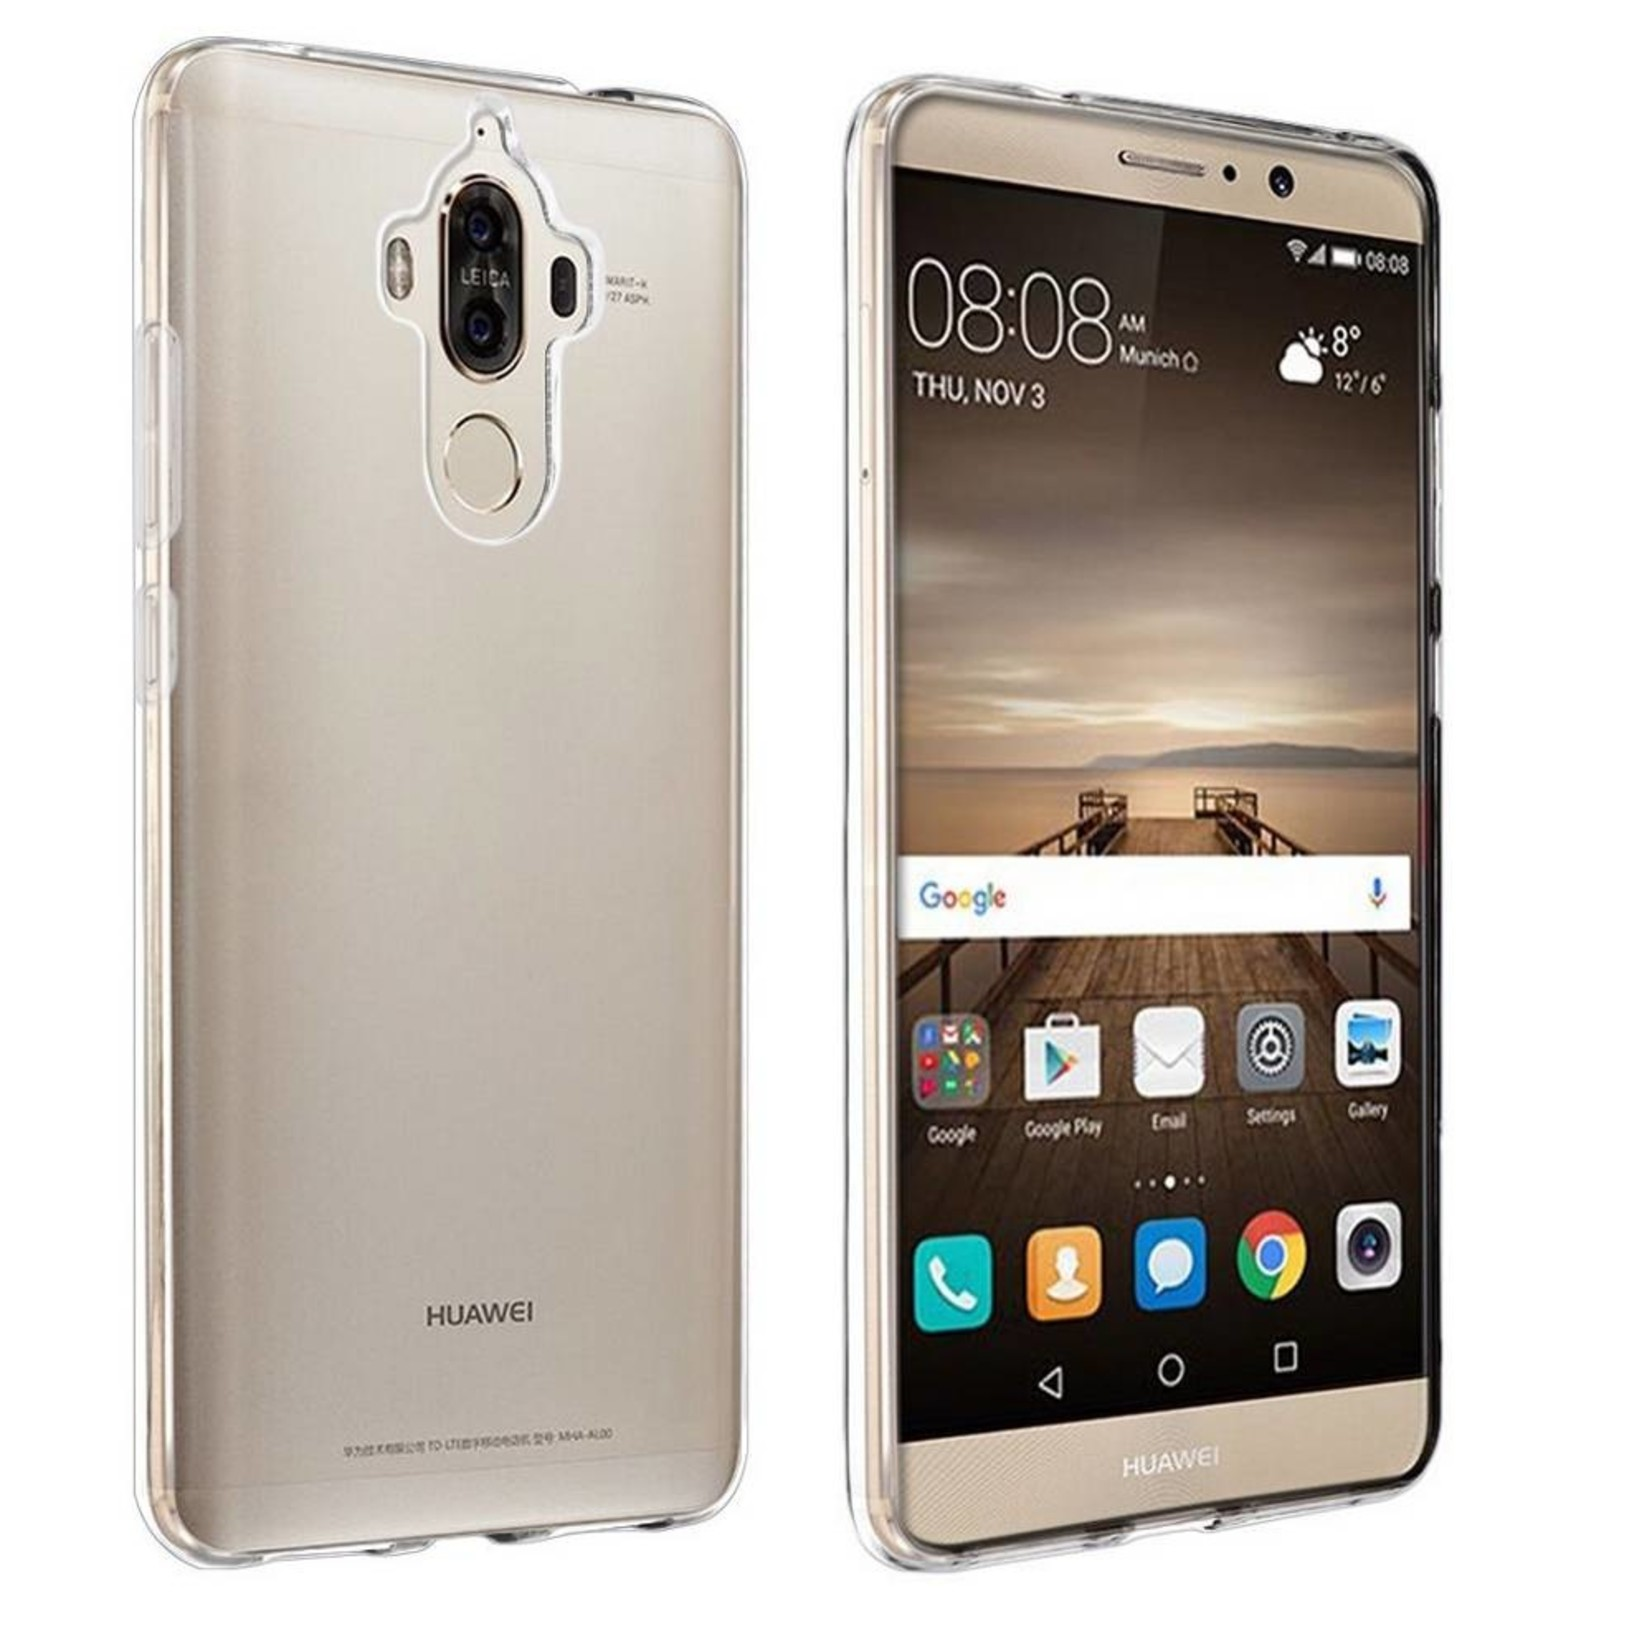 Colorfone Hoesje CoolSkin3T voor Huawei Mate 9 Tr. Wit